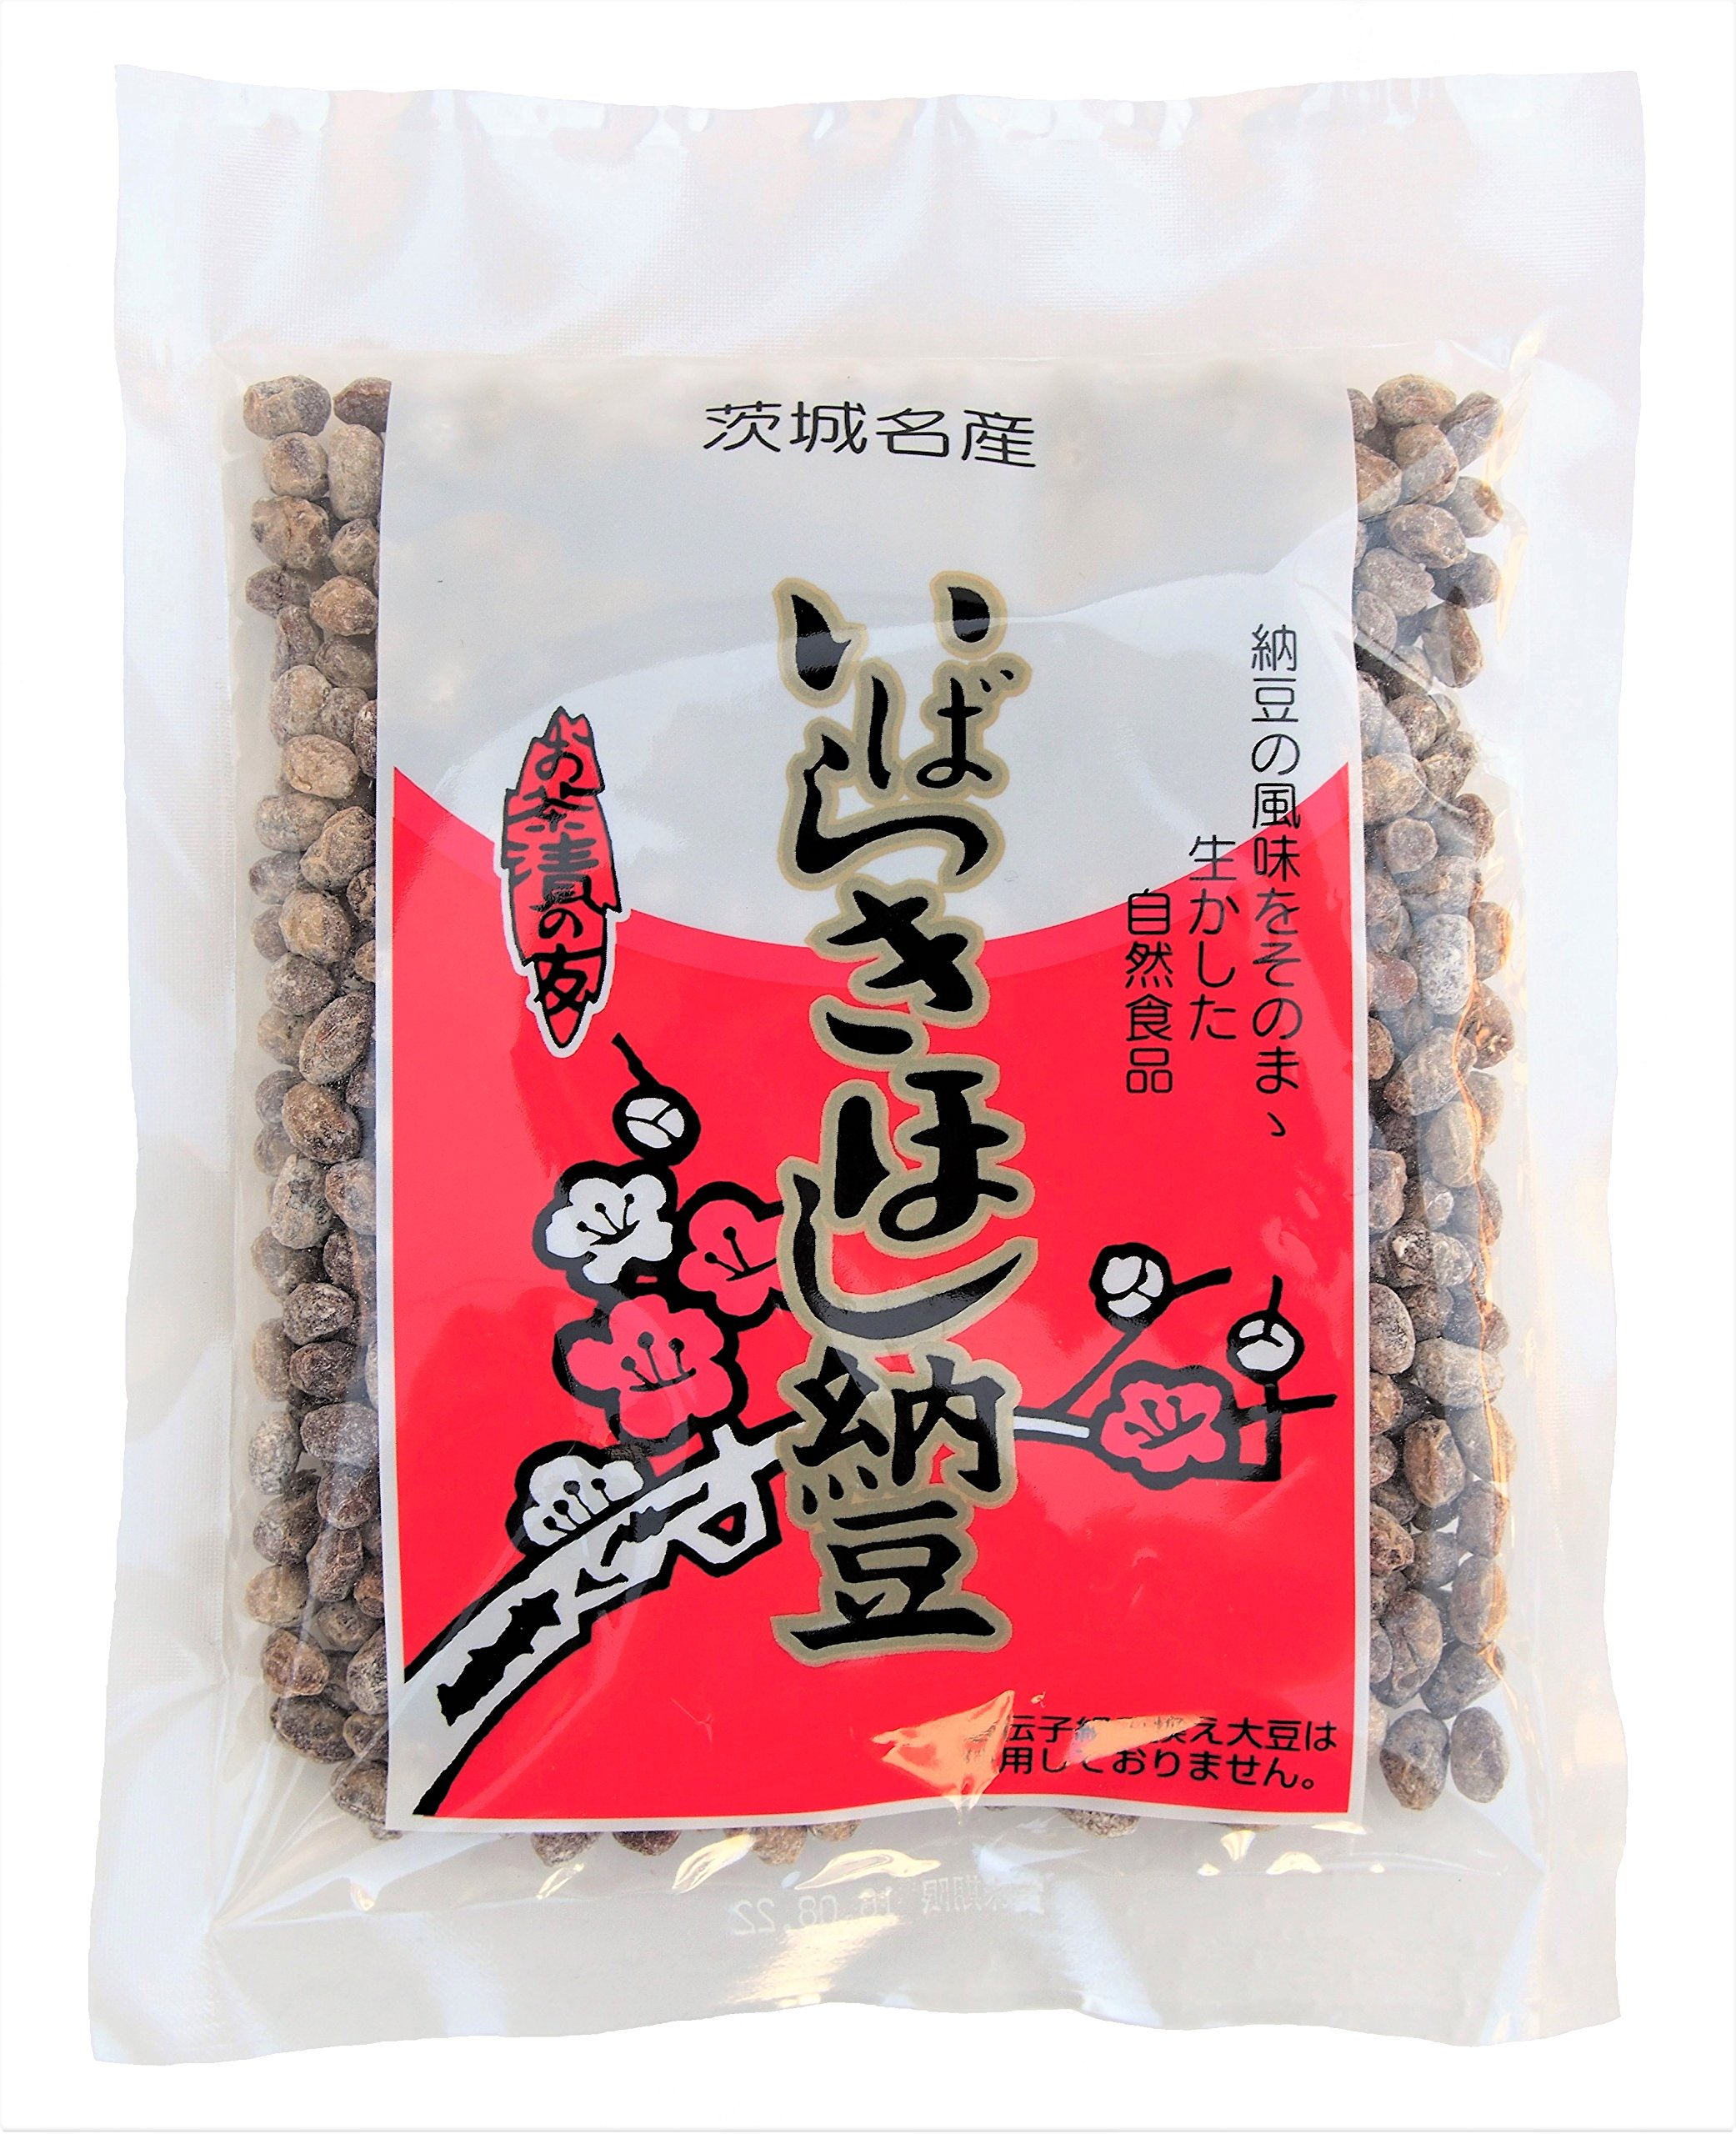 Ibaraki specialty Ibarakihoshi natto 150g entering